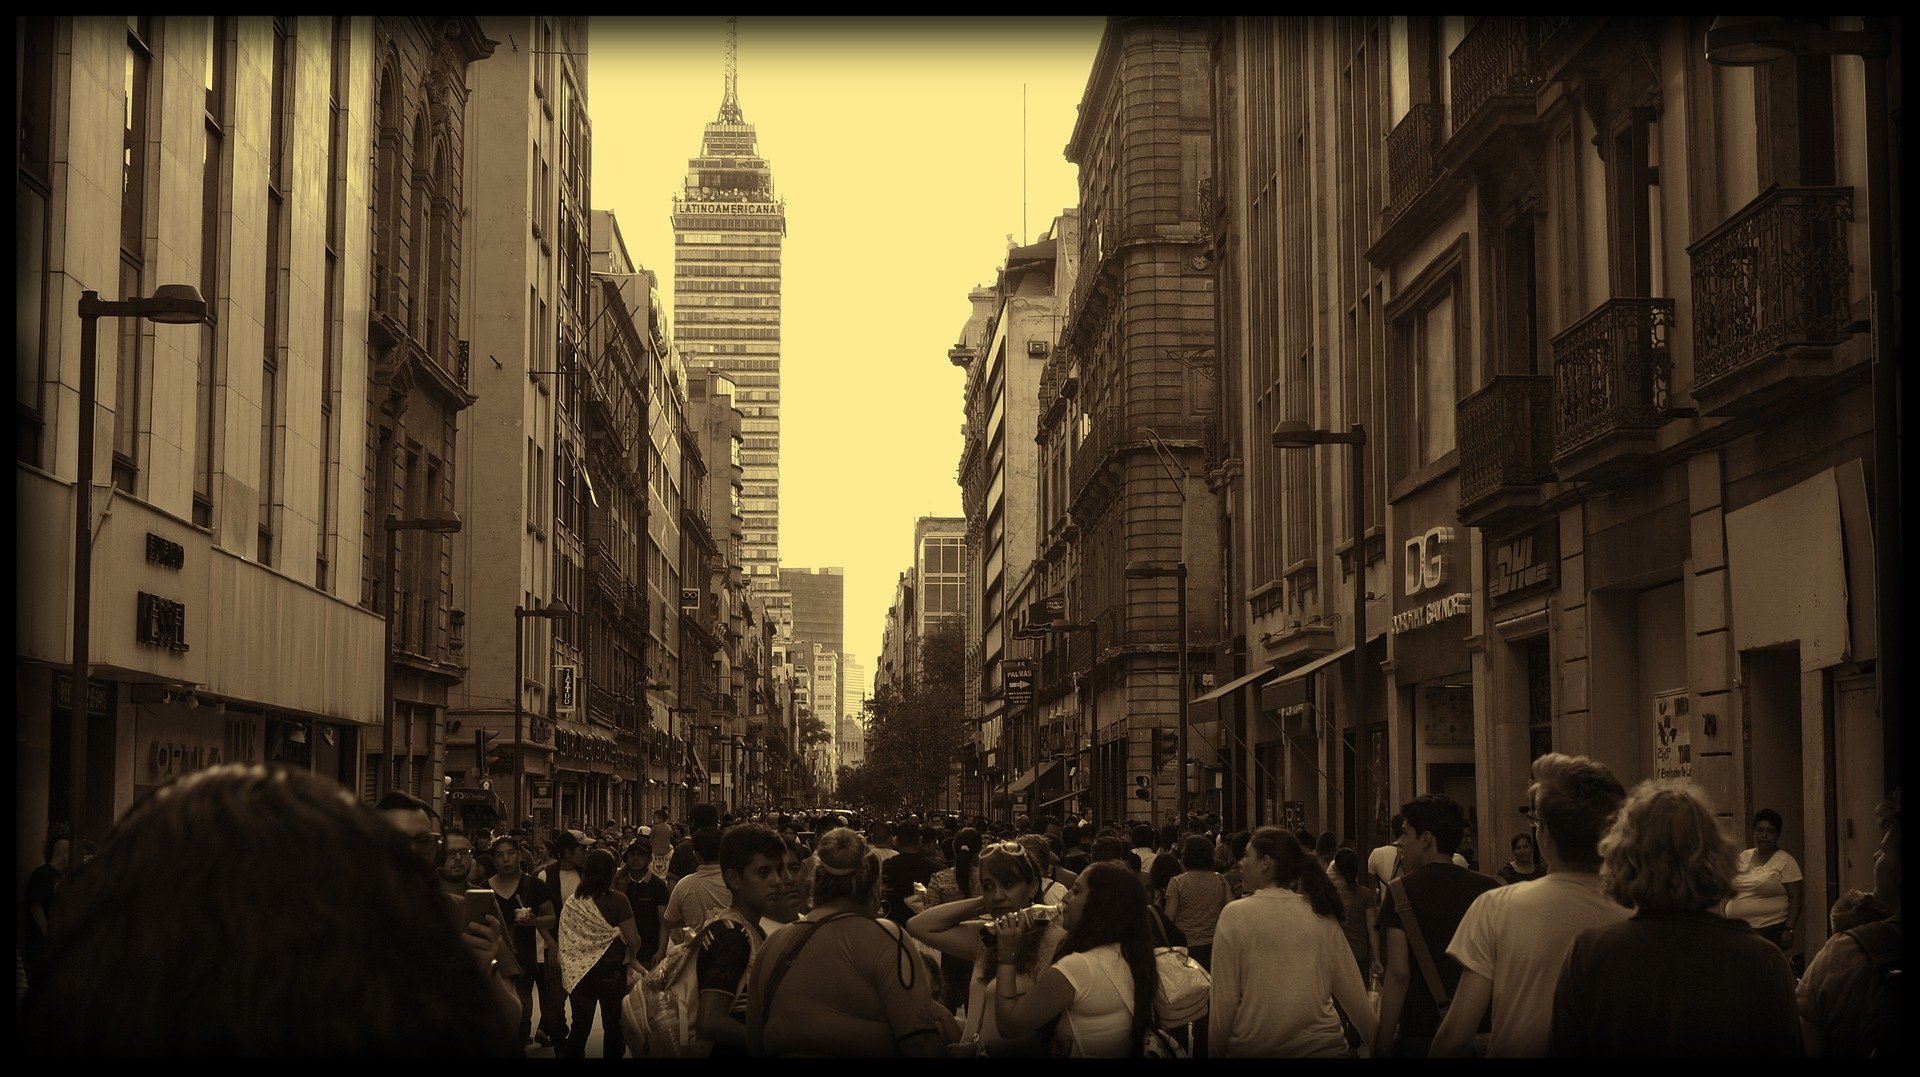 Mexico City. Chaotic, Beautiful, in its own way. Attracts all types. Some love it, others hate it. No one understands it.